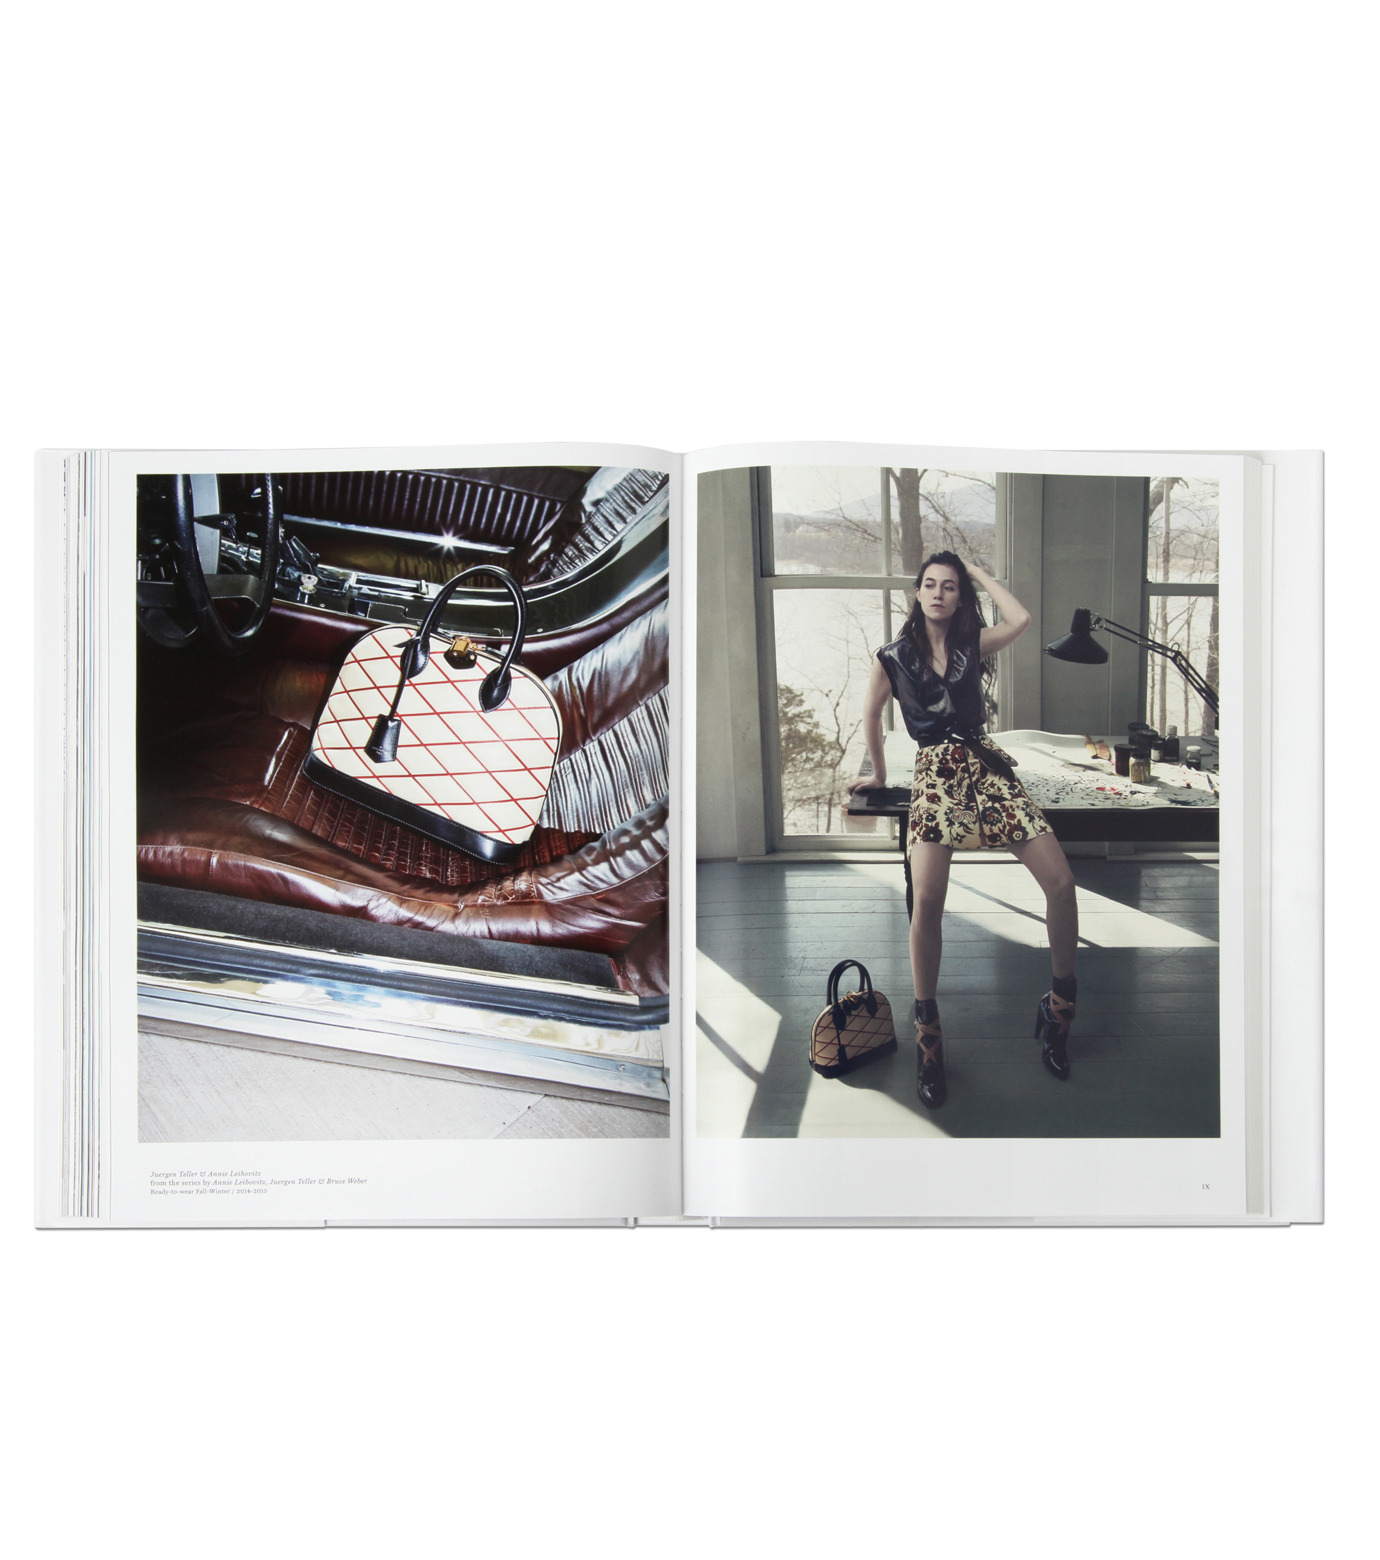 ArtBook(アートブック)のLouis Vuitton Fashion Photography.-GRAY(インテリア/OTHER-GOODS/interior/OTHER-GOODS)-8478-4331-2-11 拡大詳細画像4